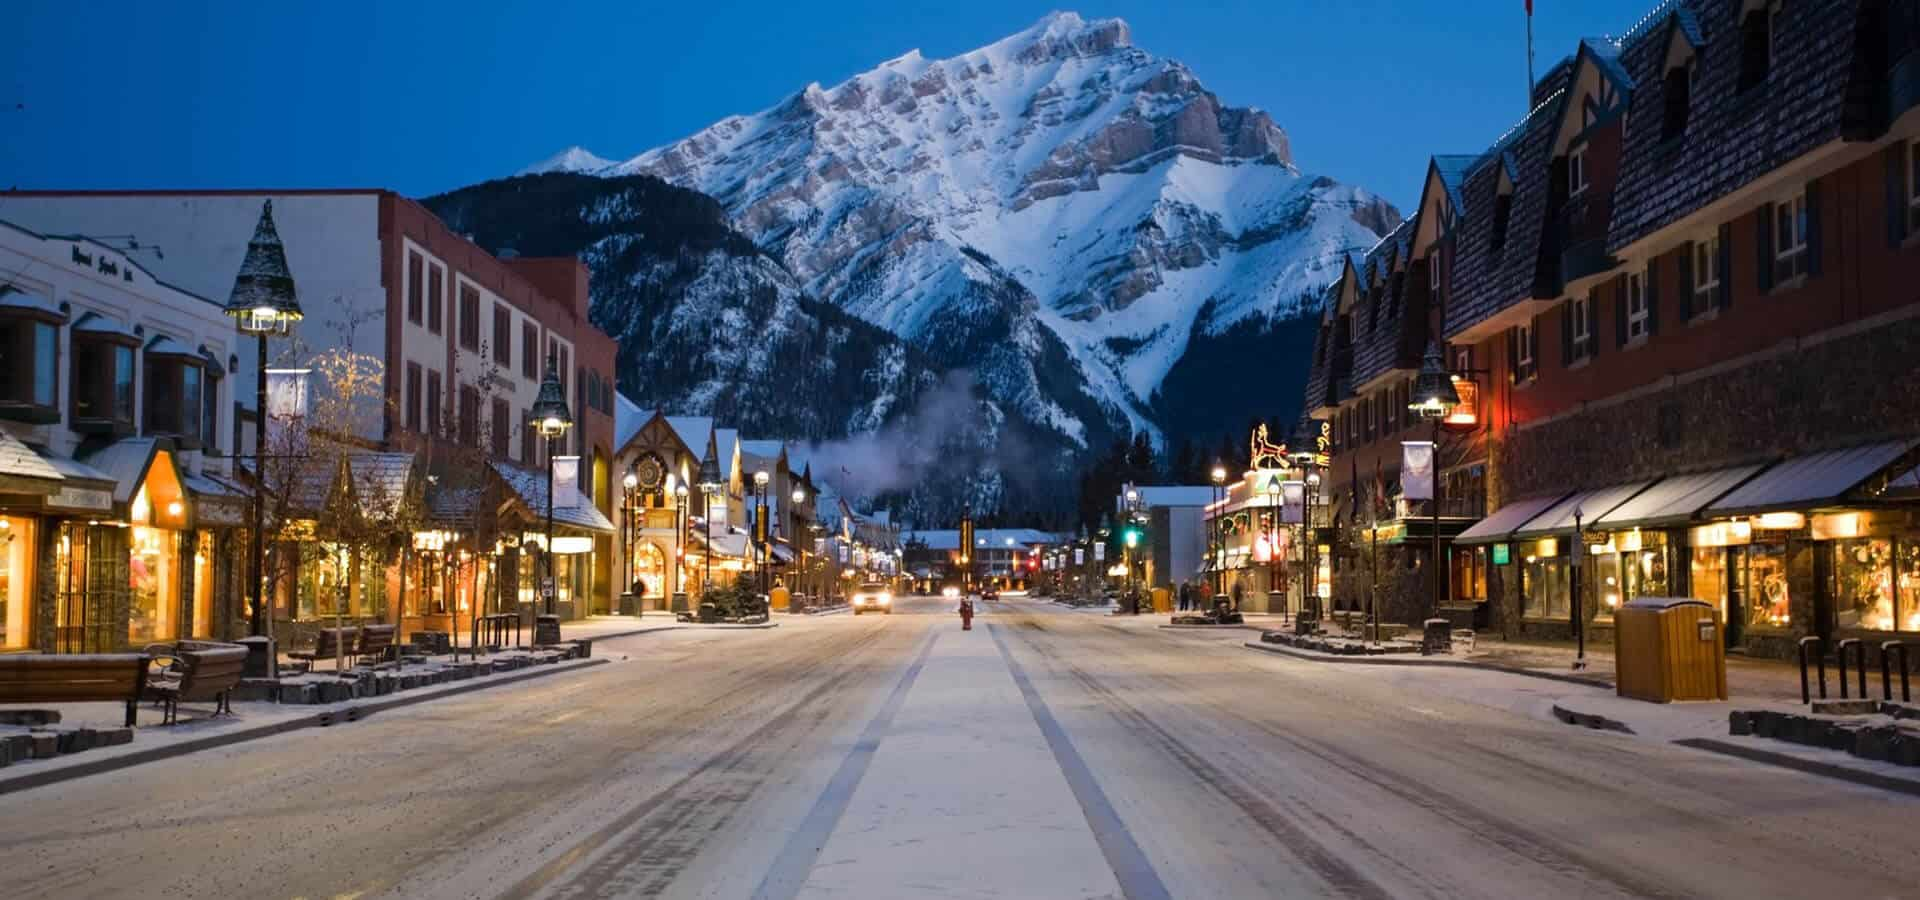 About Banff & Local Attractions